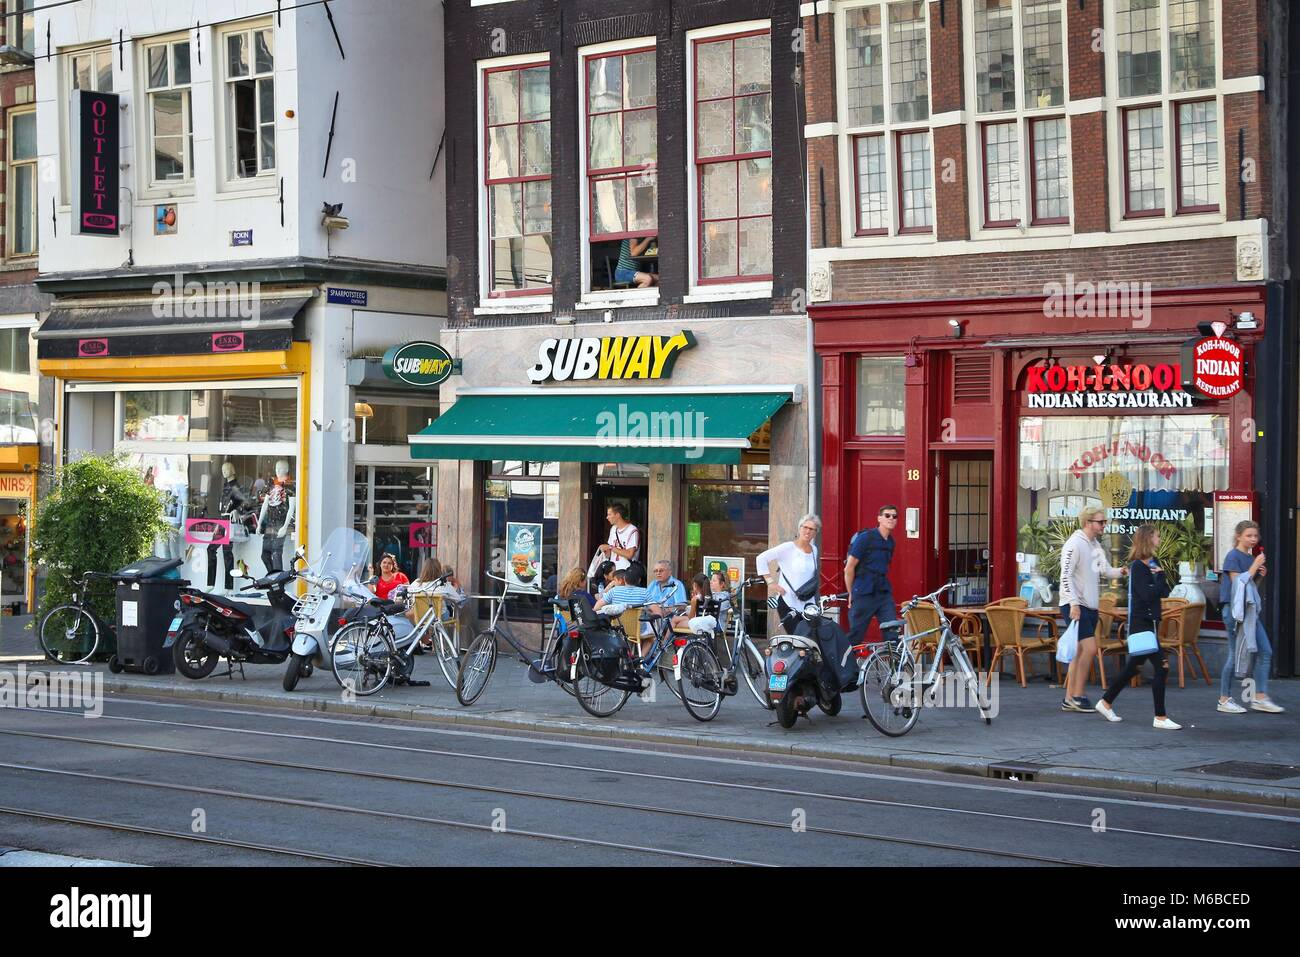 AMSTERDAM, NETHERLANDS - JULY 9, 2017: People shop at Rokin street in Amsterdam. Amsterdam is the capital city of - Stock Image